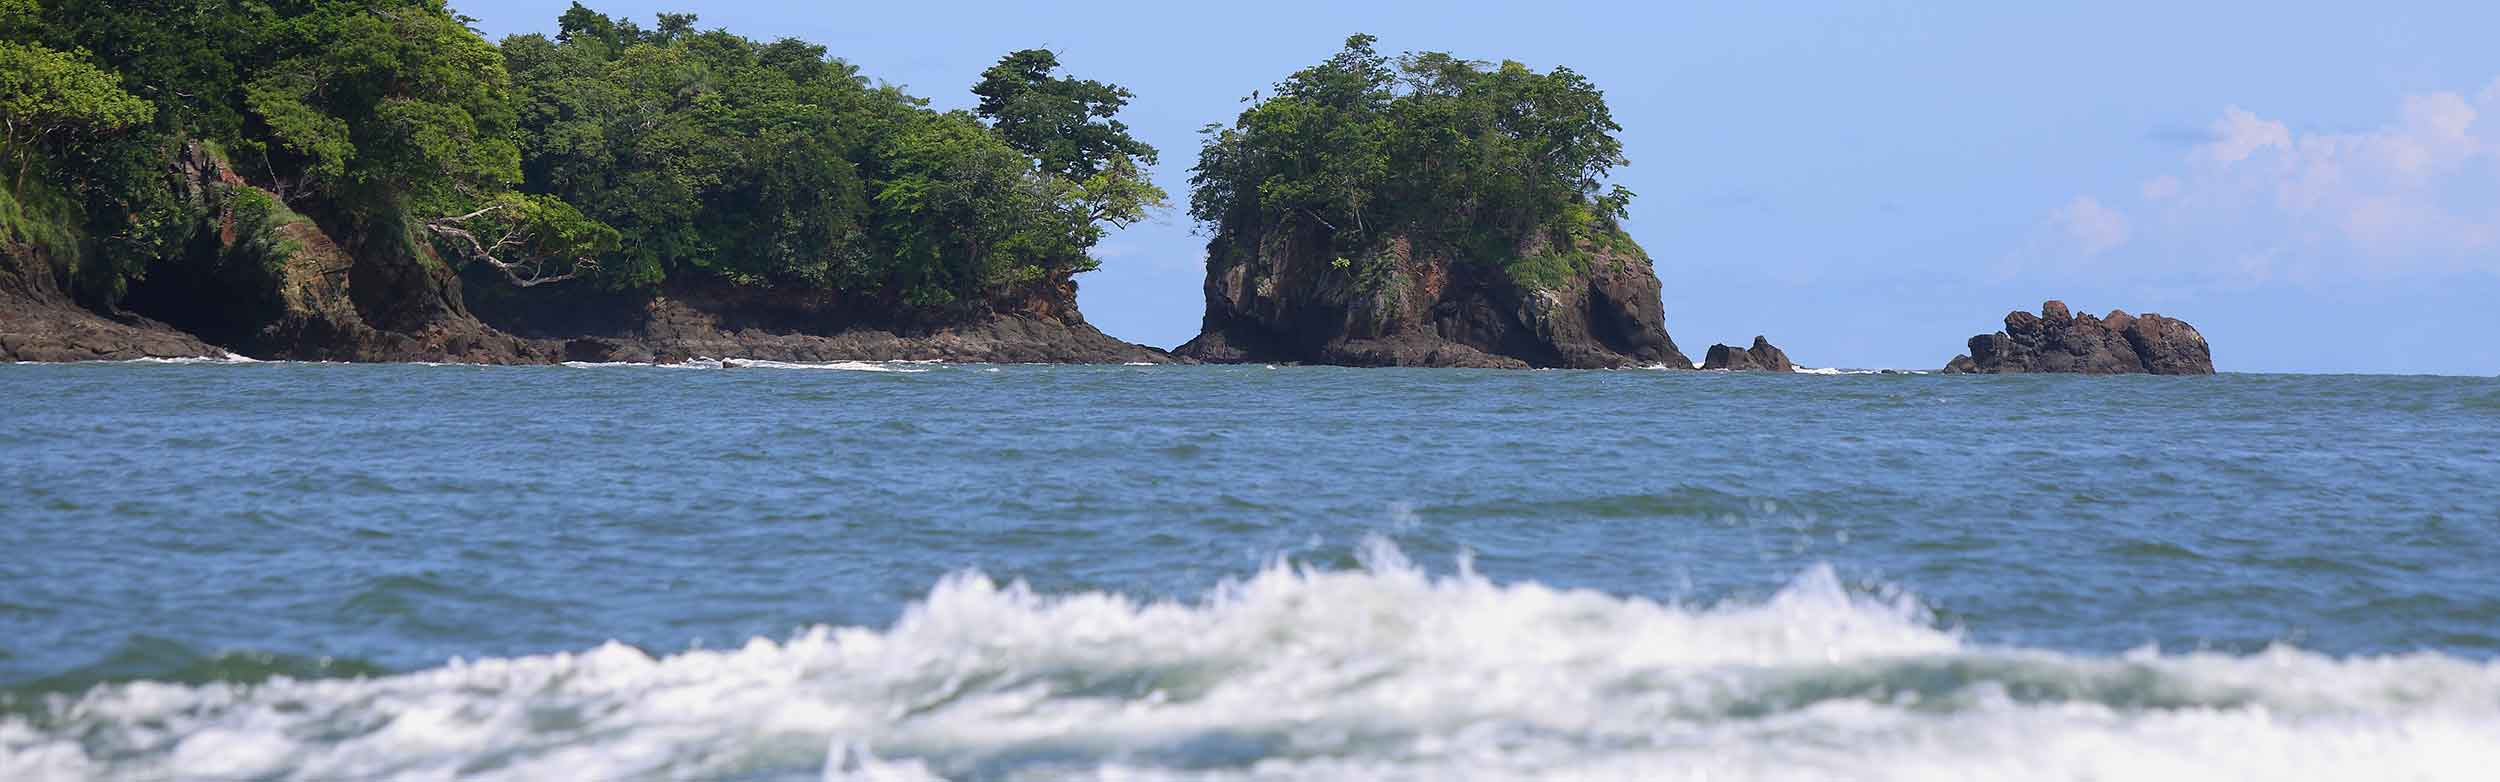 Snorkeling in the Gulf of Chiriqui